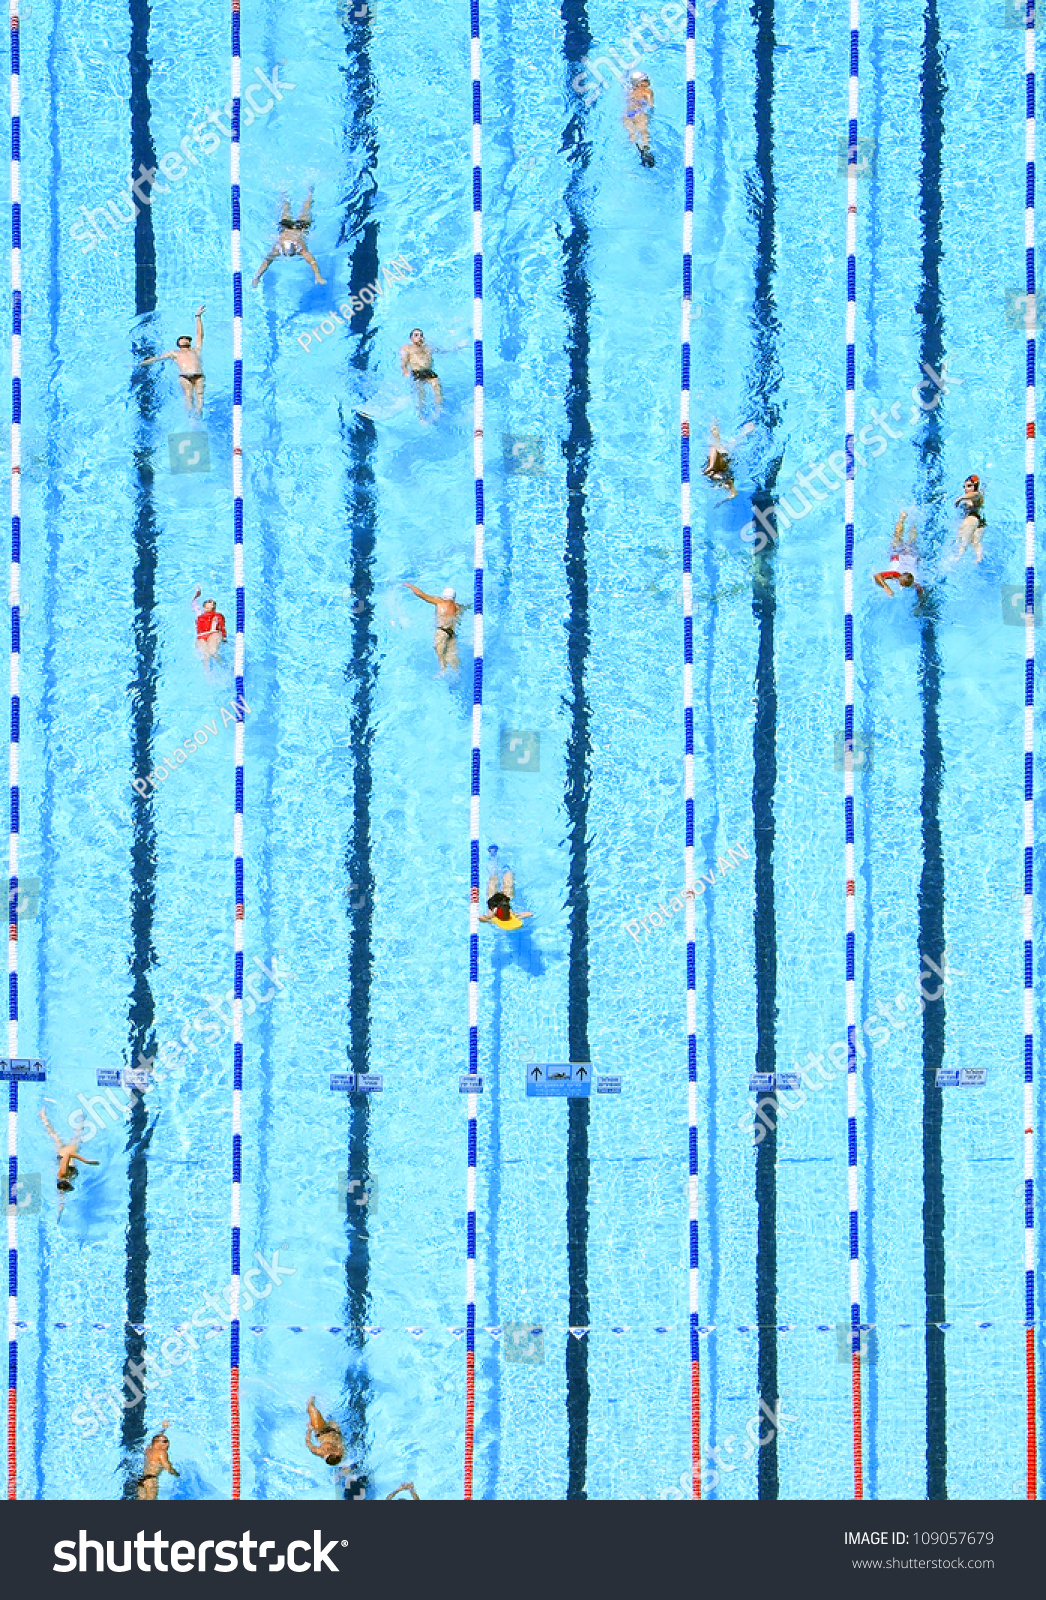 Top view on pool blue water stock photo 109057679 - How to make swimming pool water blue ...